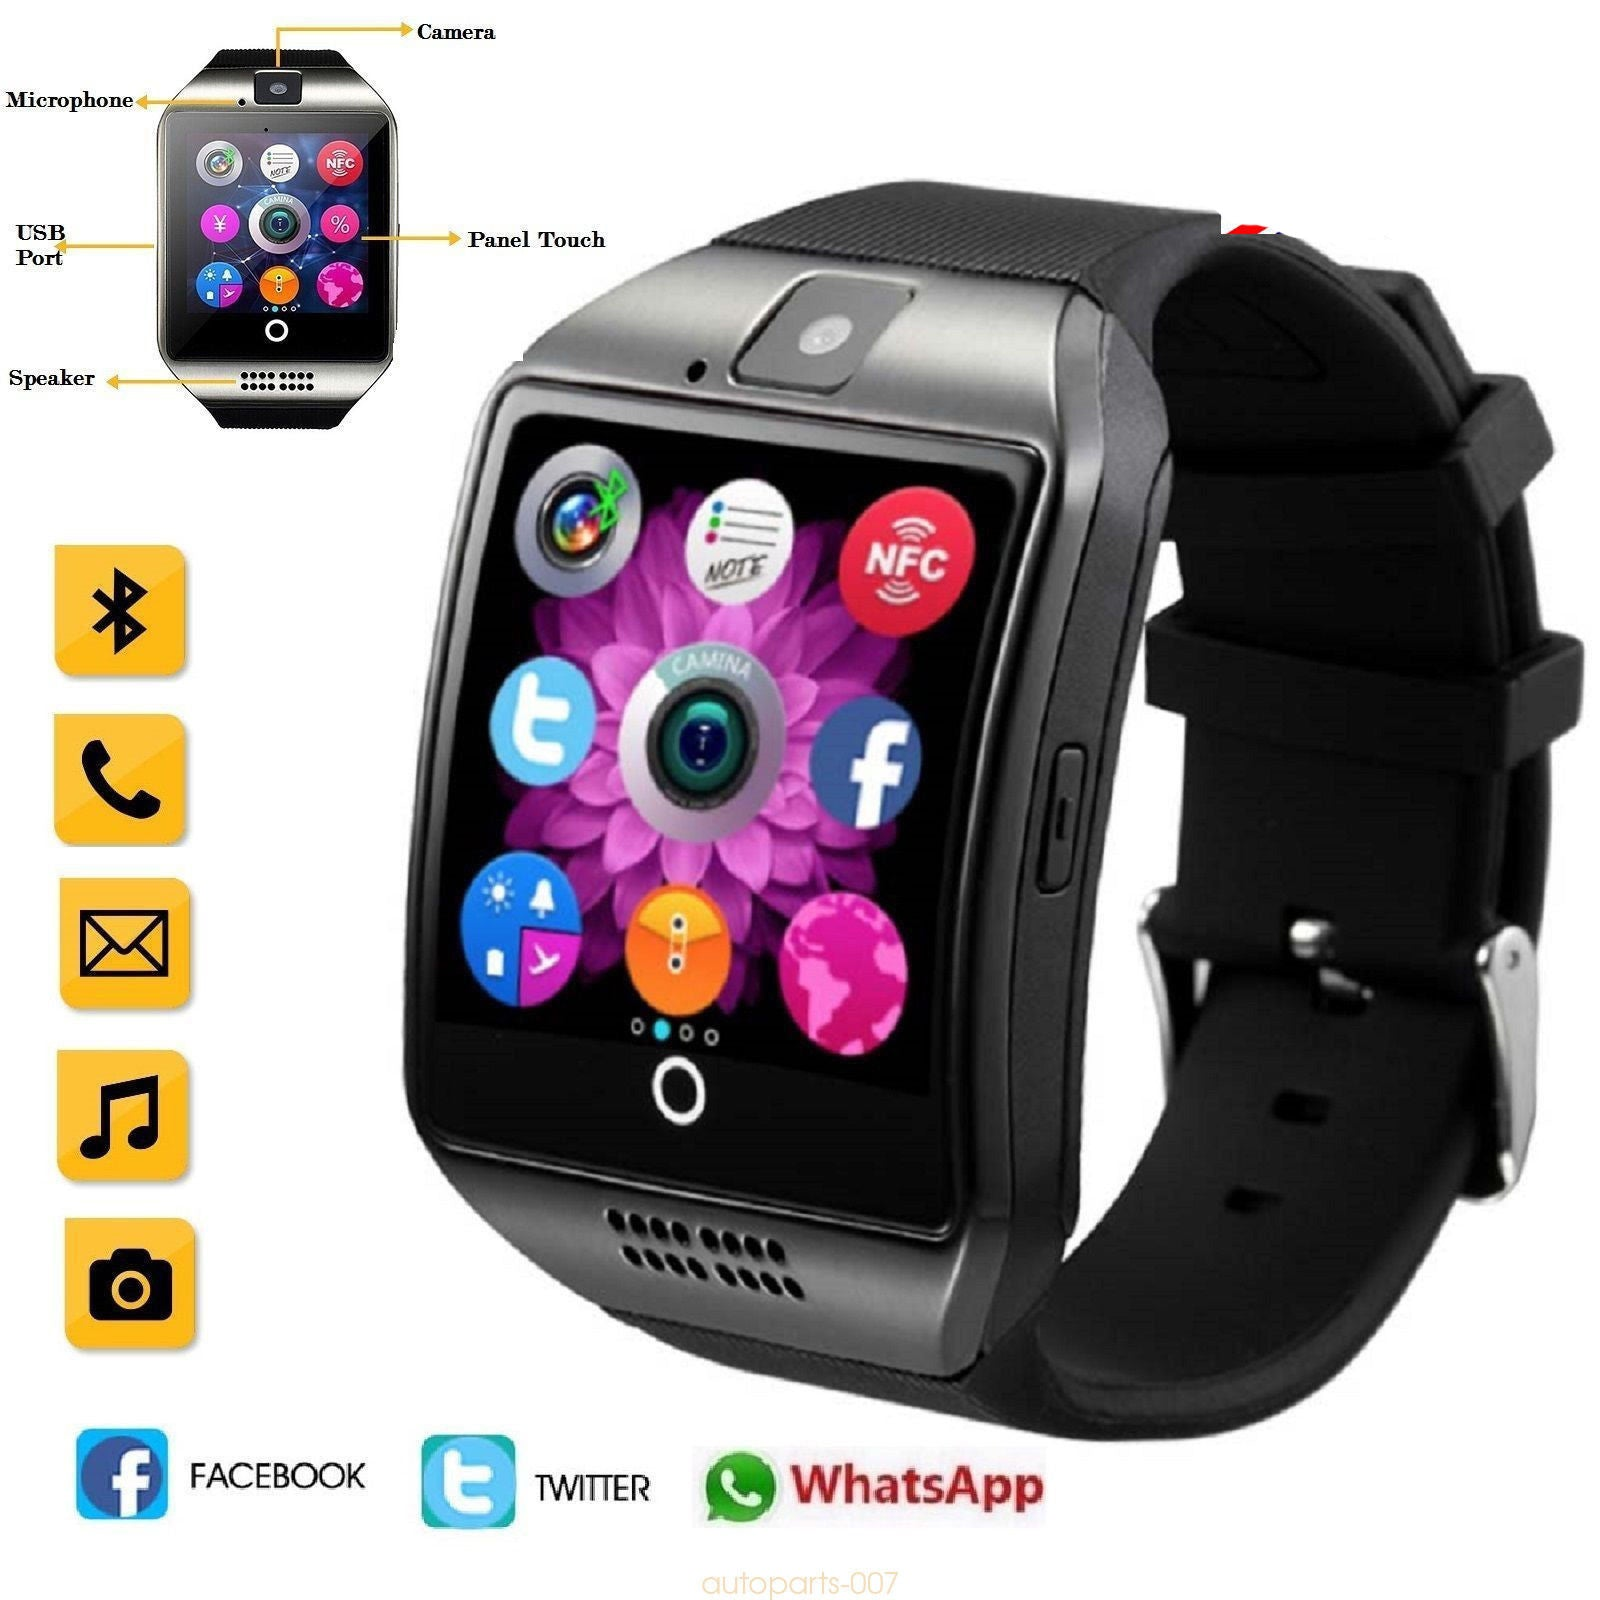 phone features mobile smart technology islam watch smartwatch sony science webjazba watches